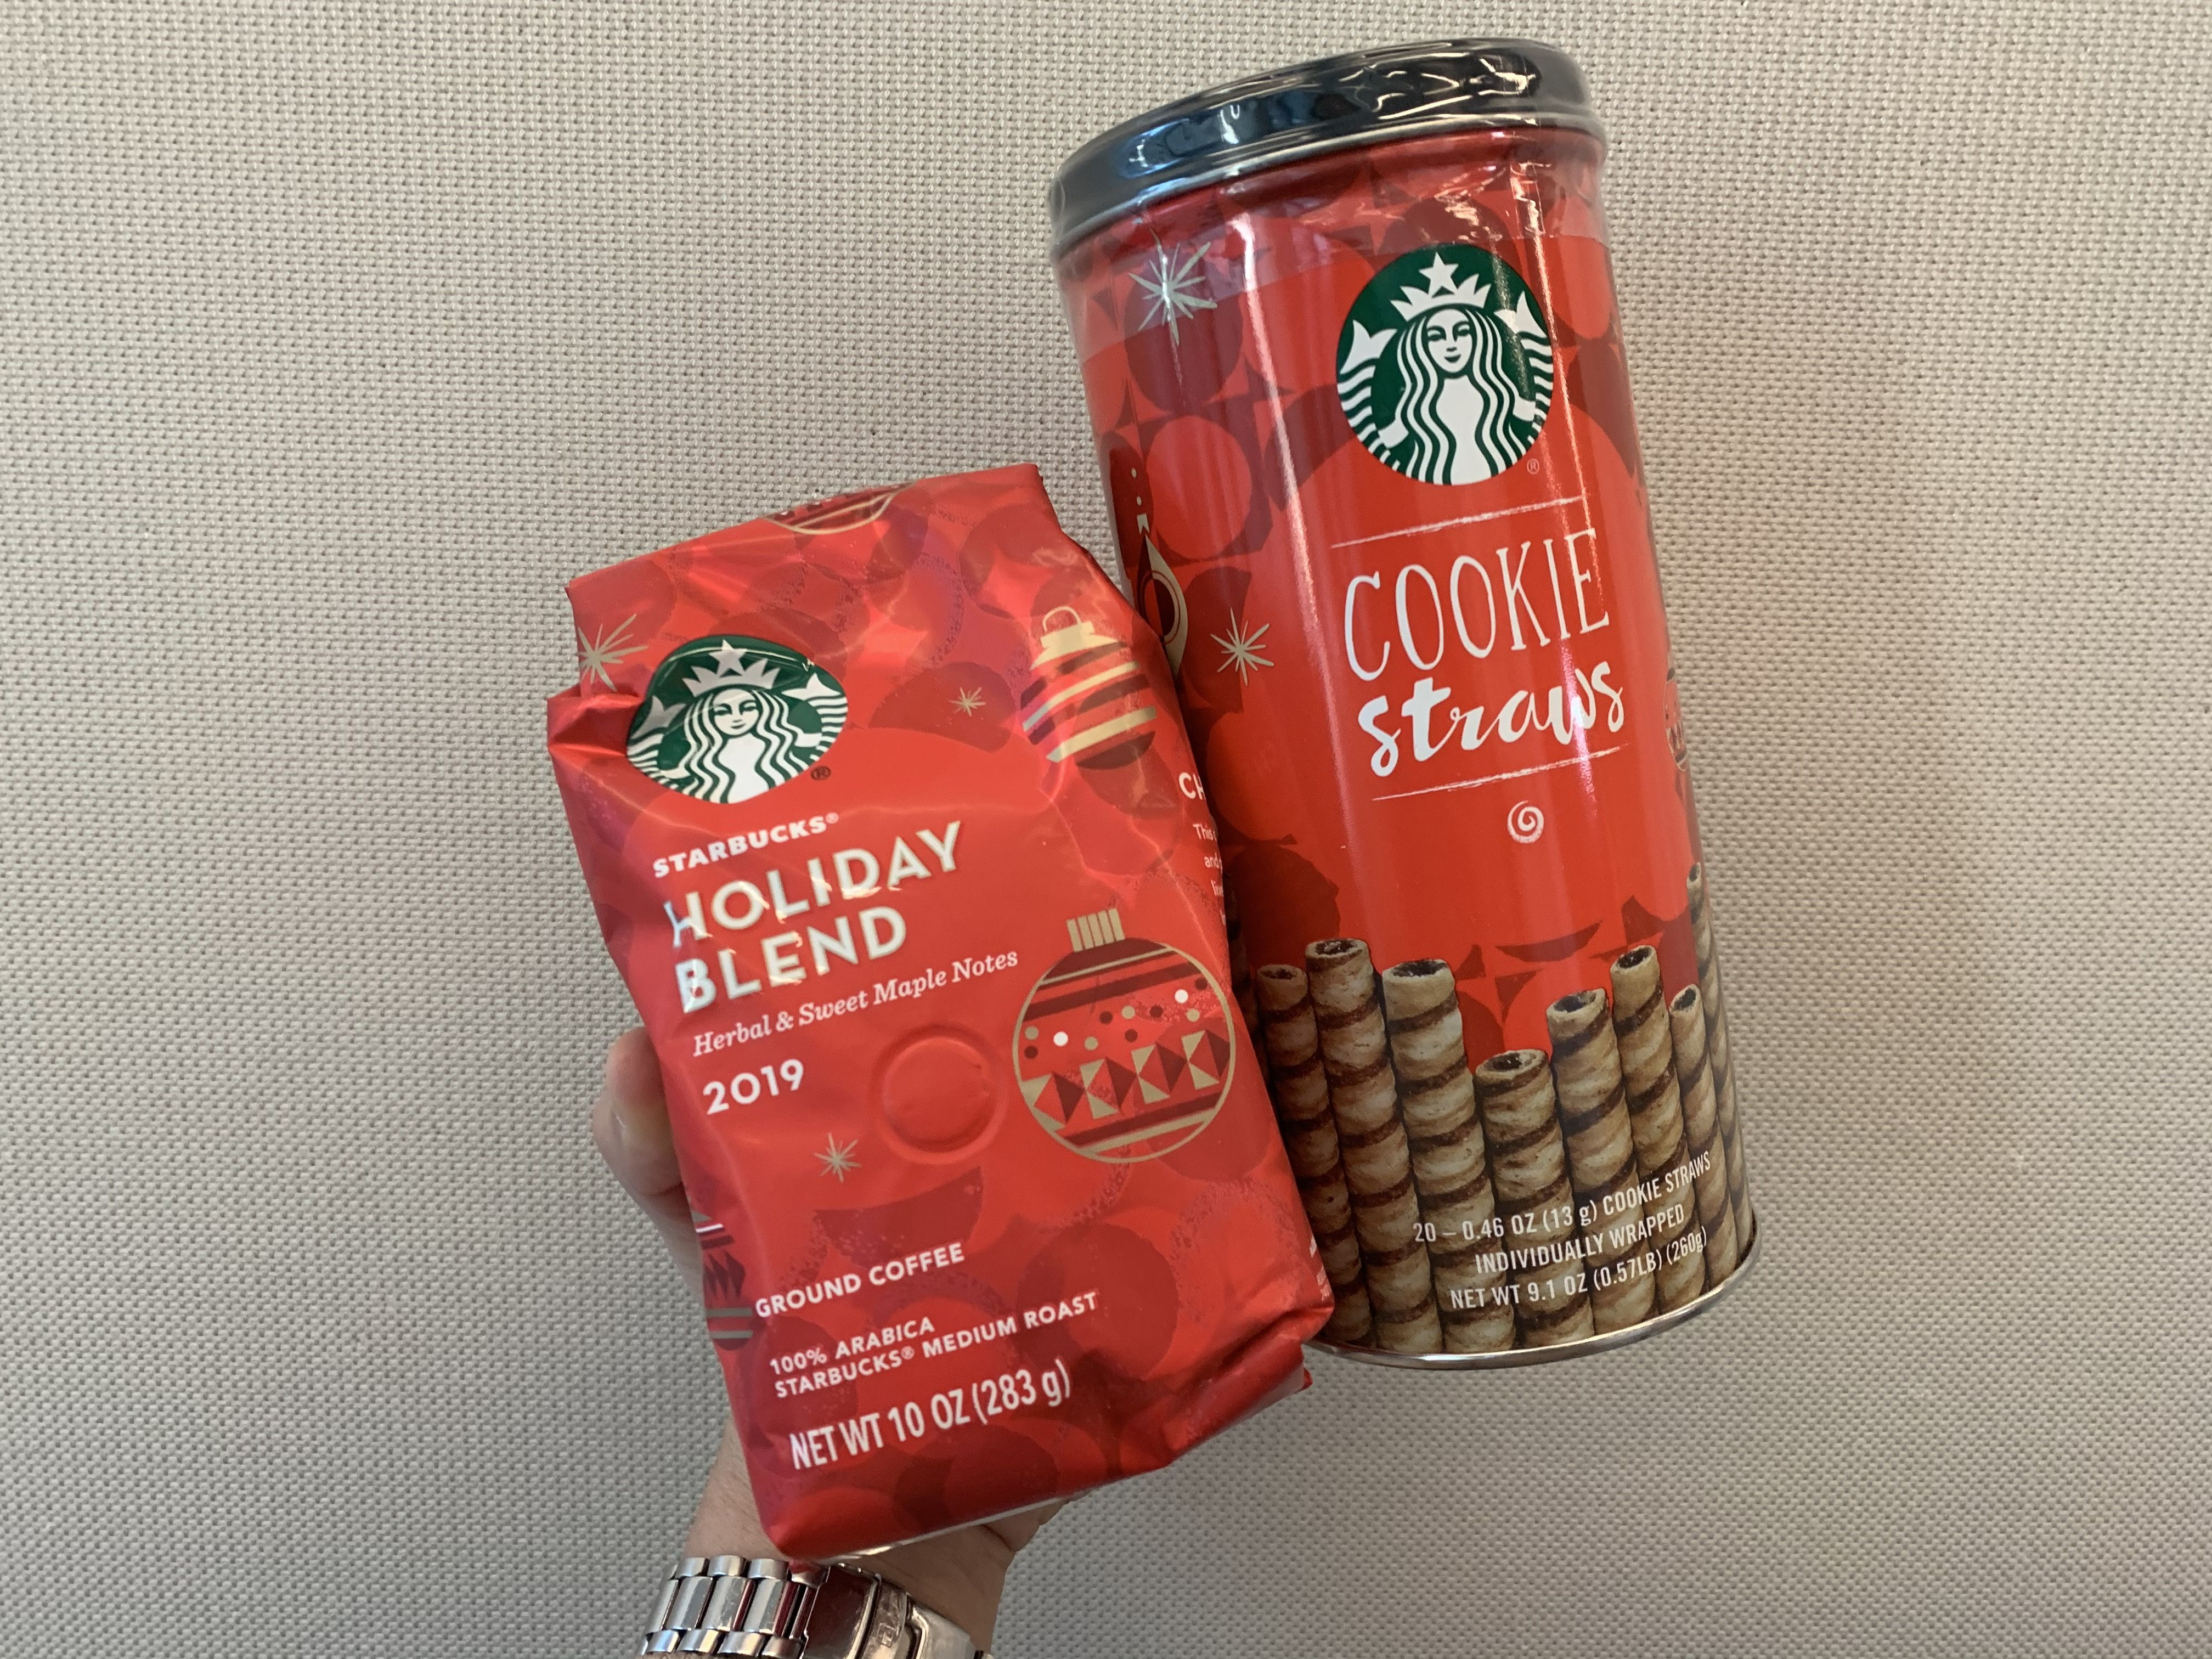 Christmas Starbucks Drinks 2019.Starbucks 2019 Holiday Blend K Cups And Coffees Are Back In